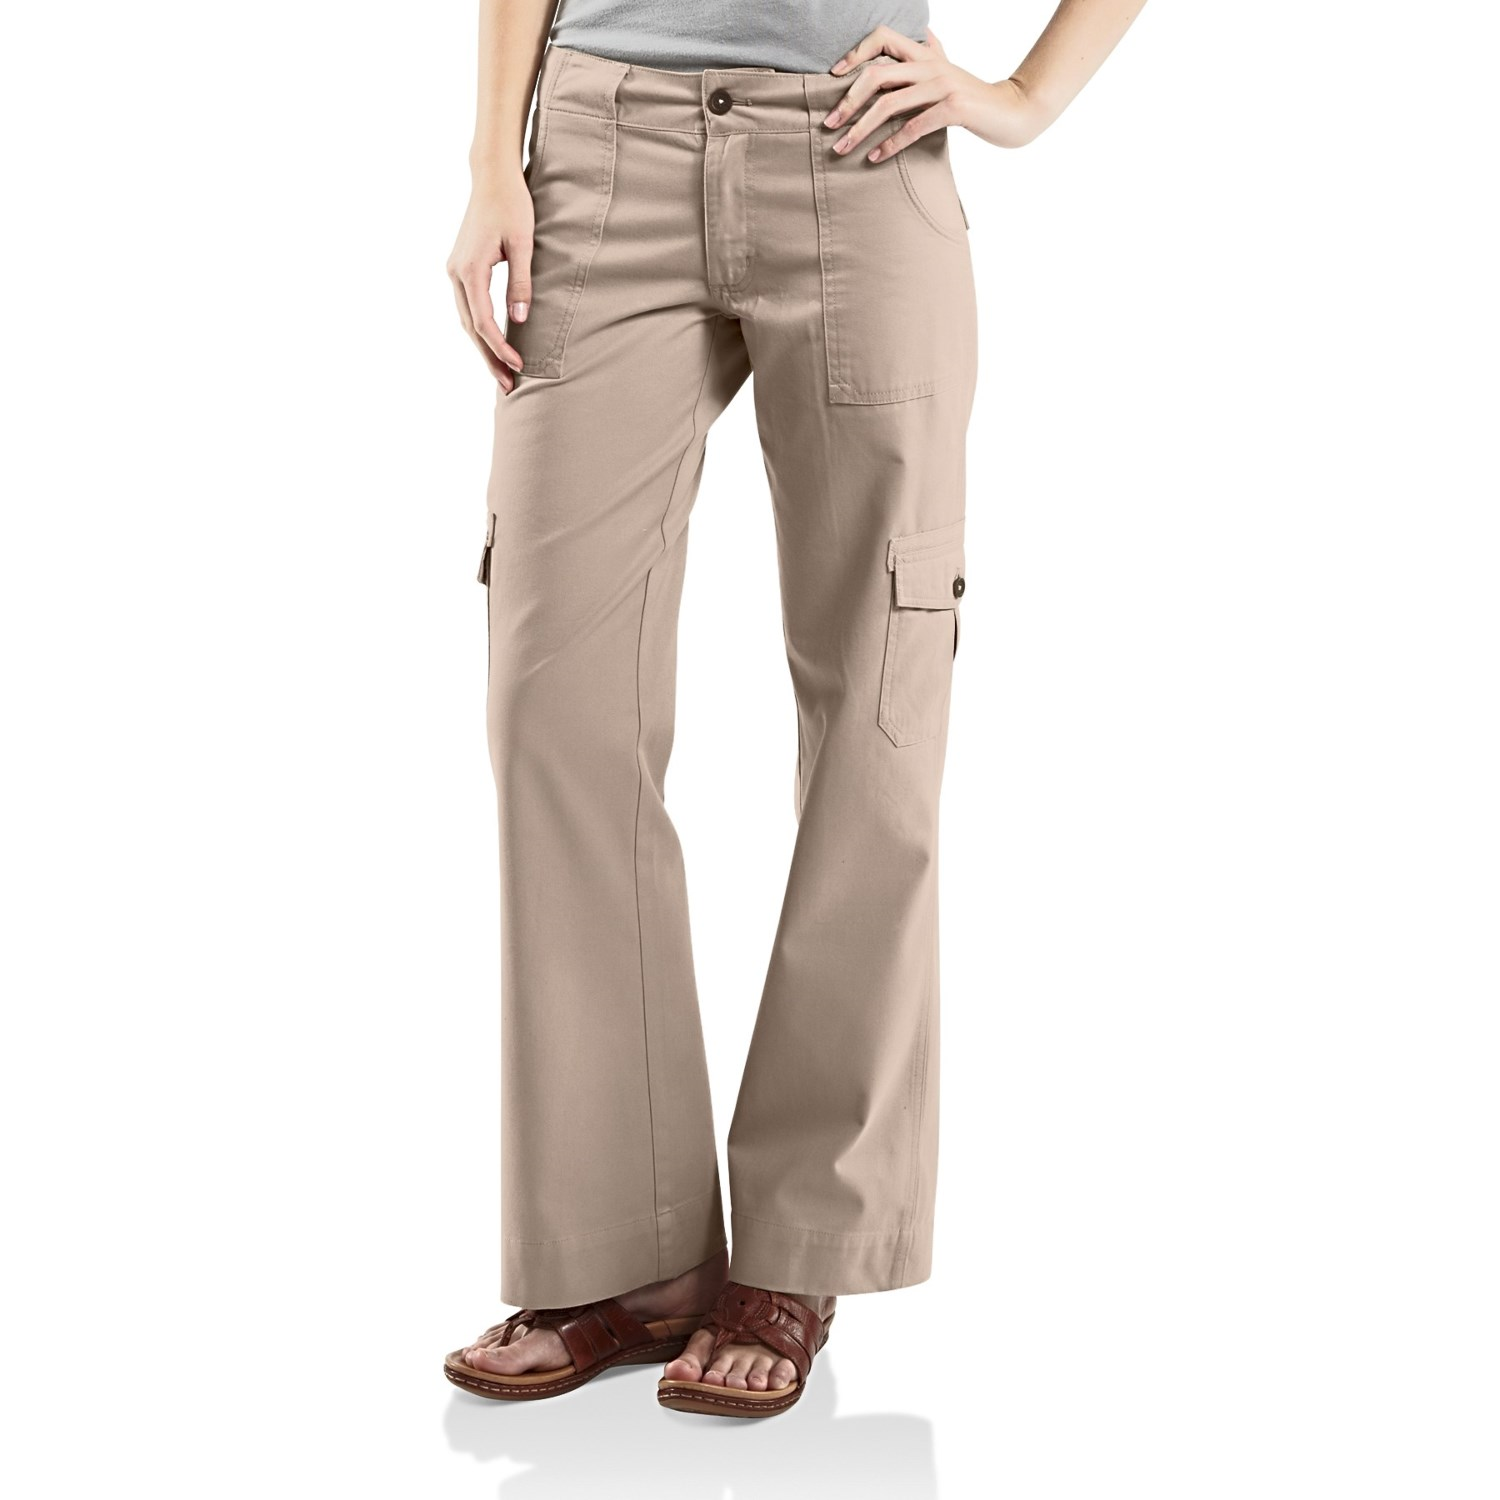 womens cargo pants for sale photo - 1